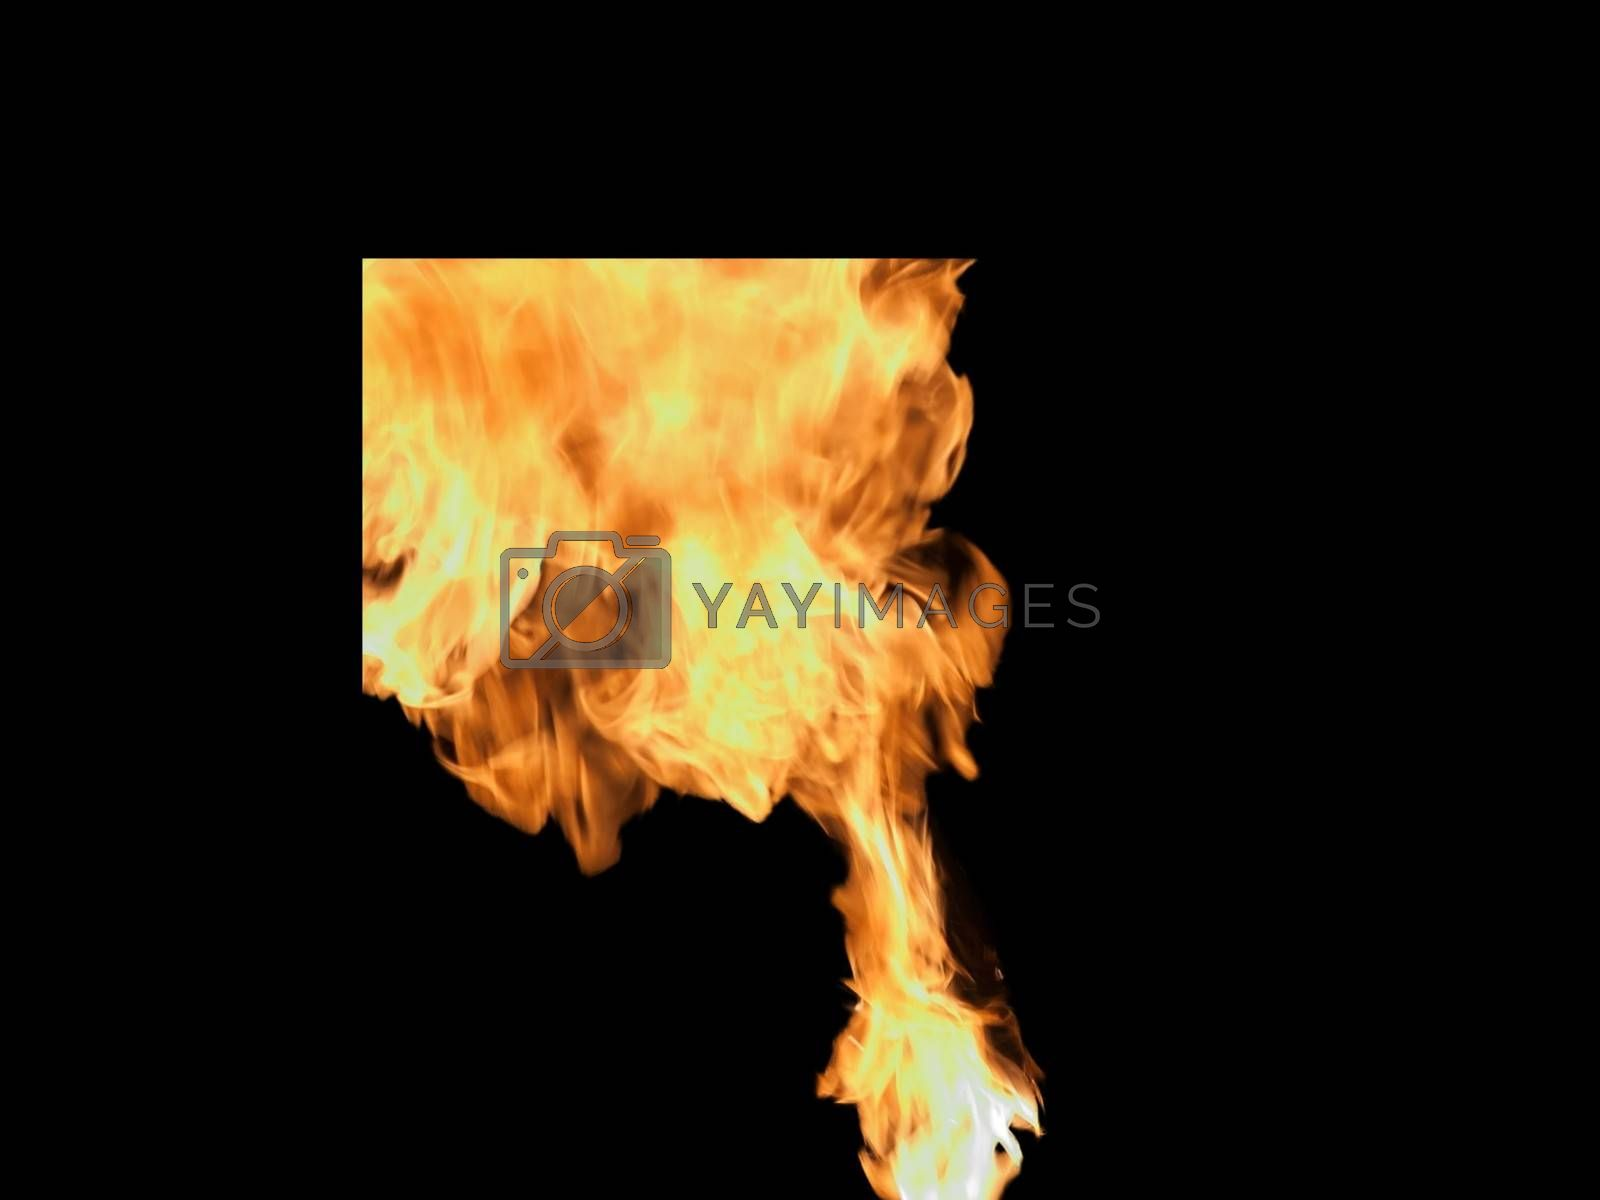 Royalty free image of The flare-up at a circus stunt with a black background by balage941